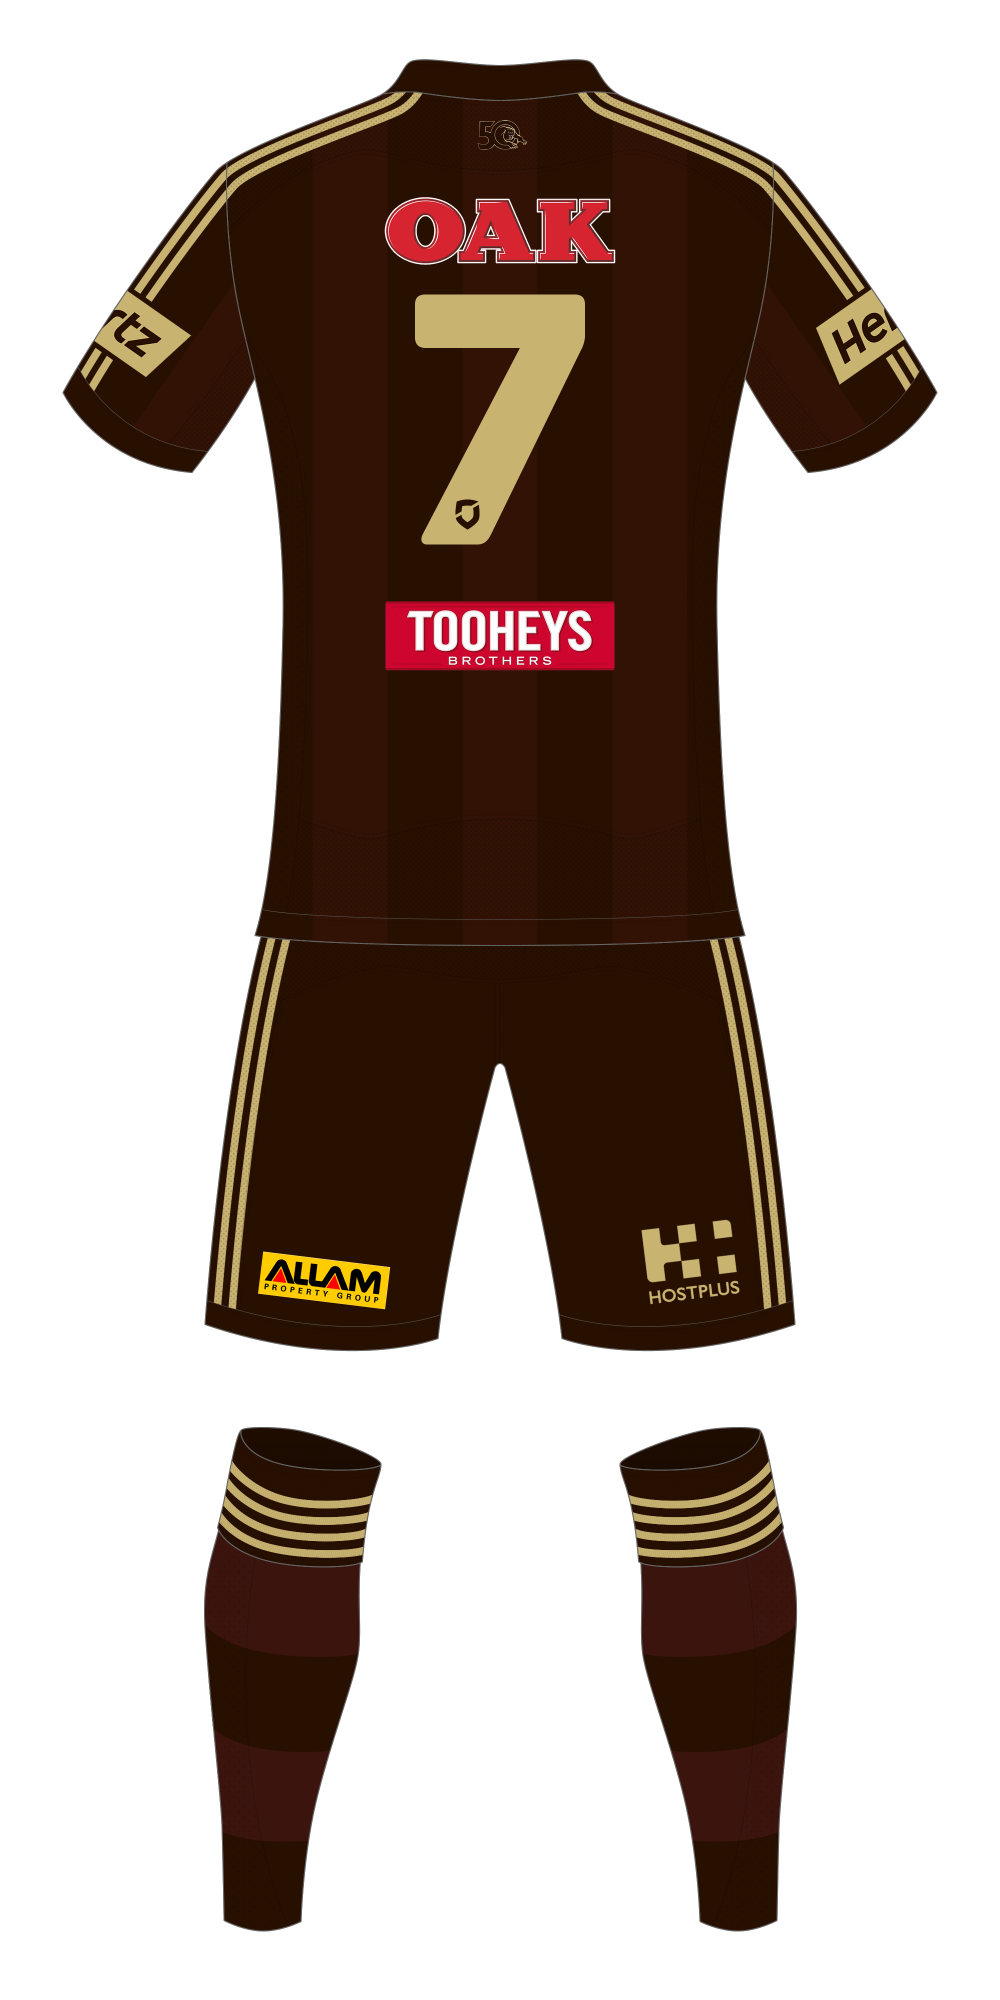 Penrith Panthers Home Kit